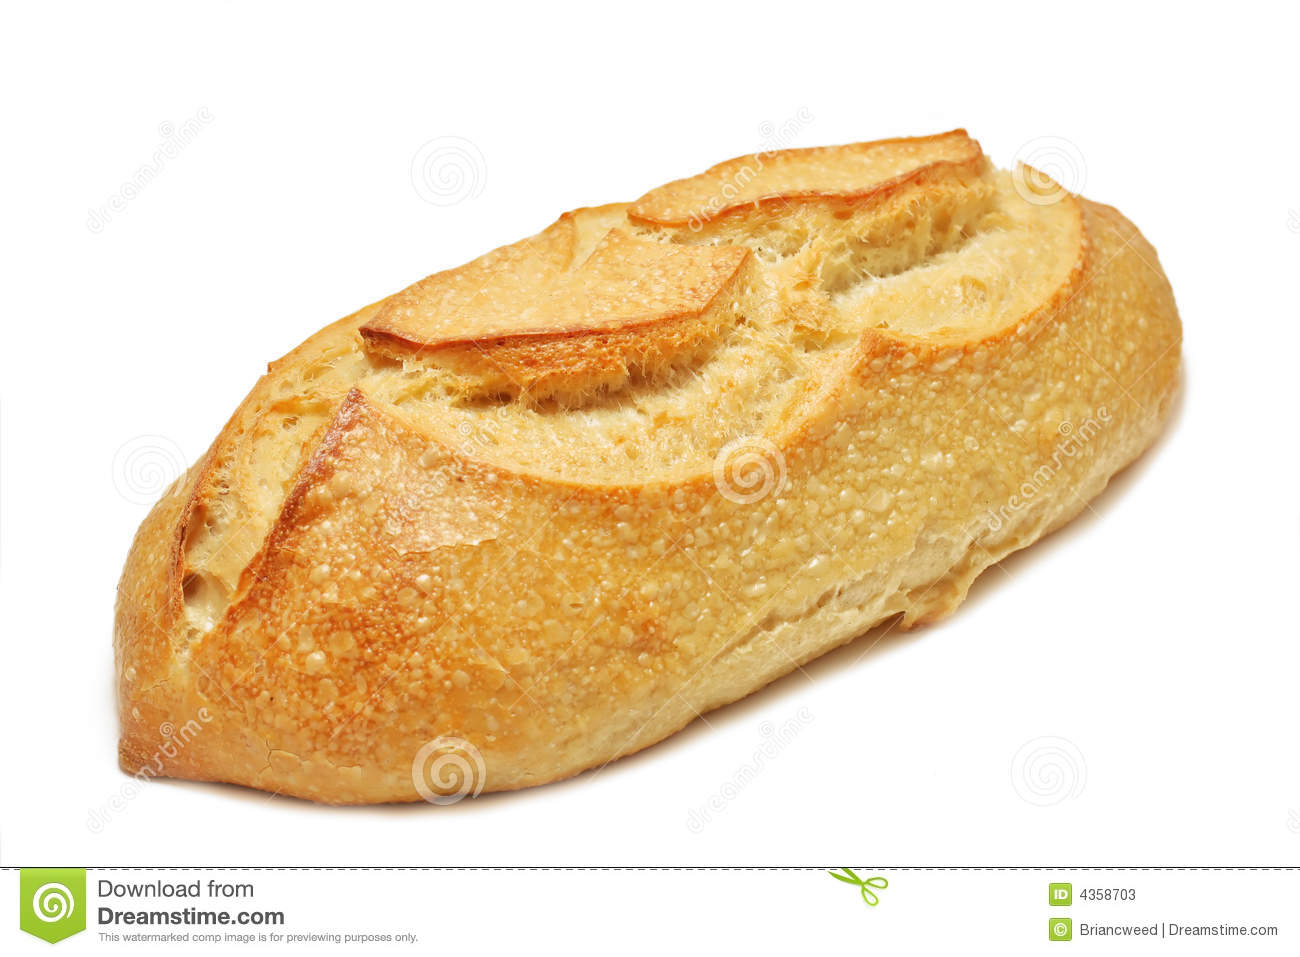 Loaf Of Unsliced Artisan Sourdough Bread Isolated On White